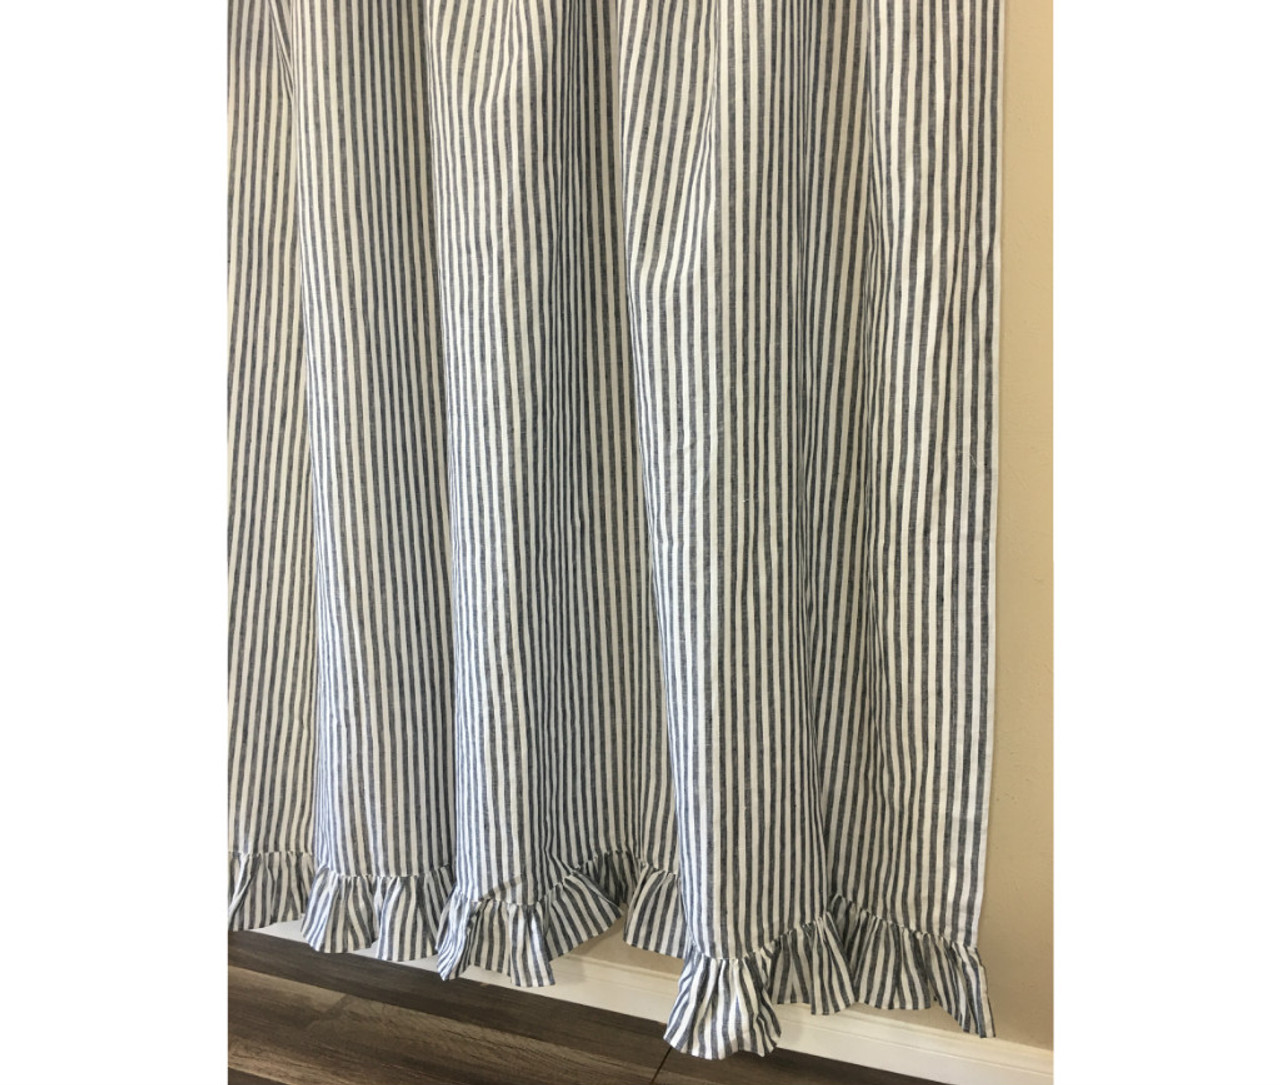 Dark Navy And White Striped Shower Curtain With Ruffle Hem Forever Stripes